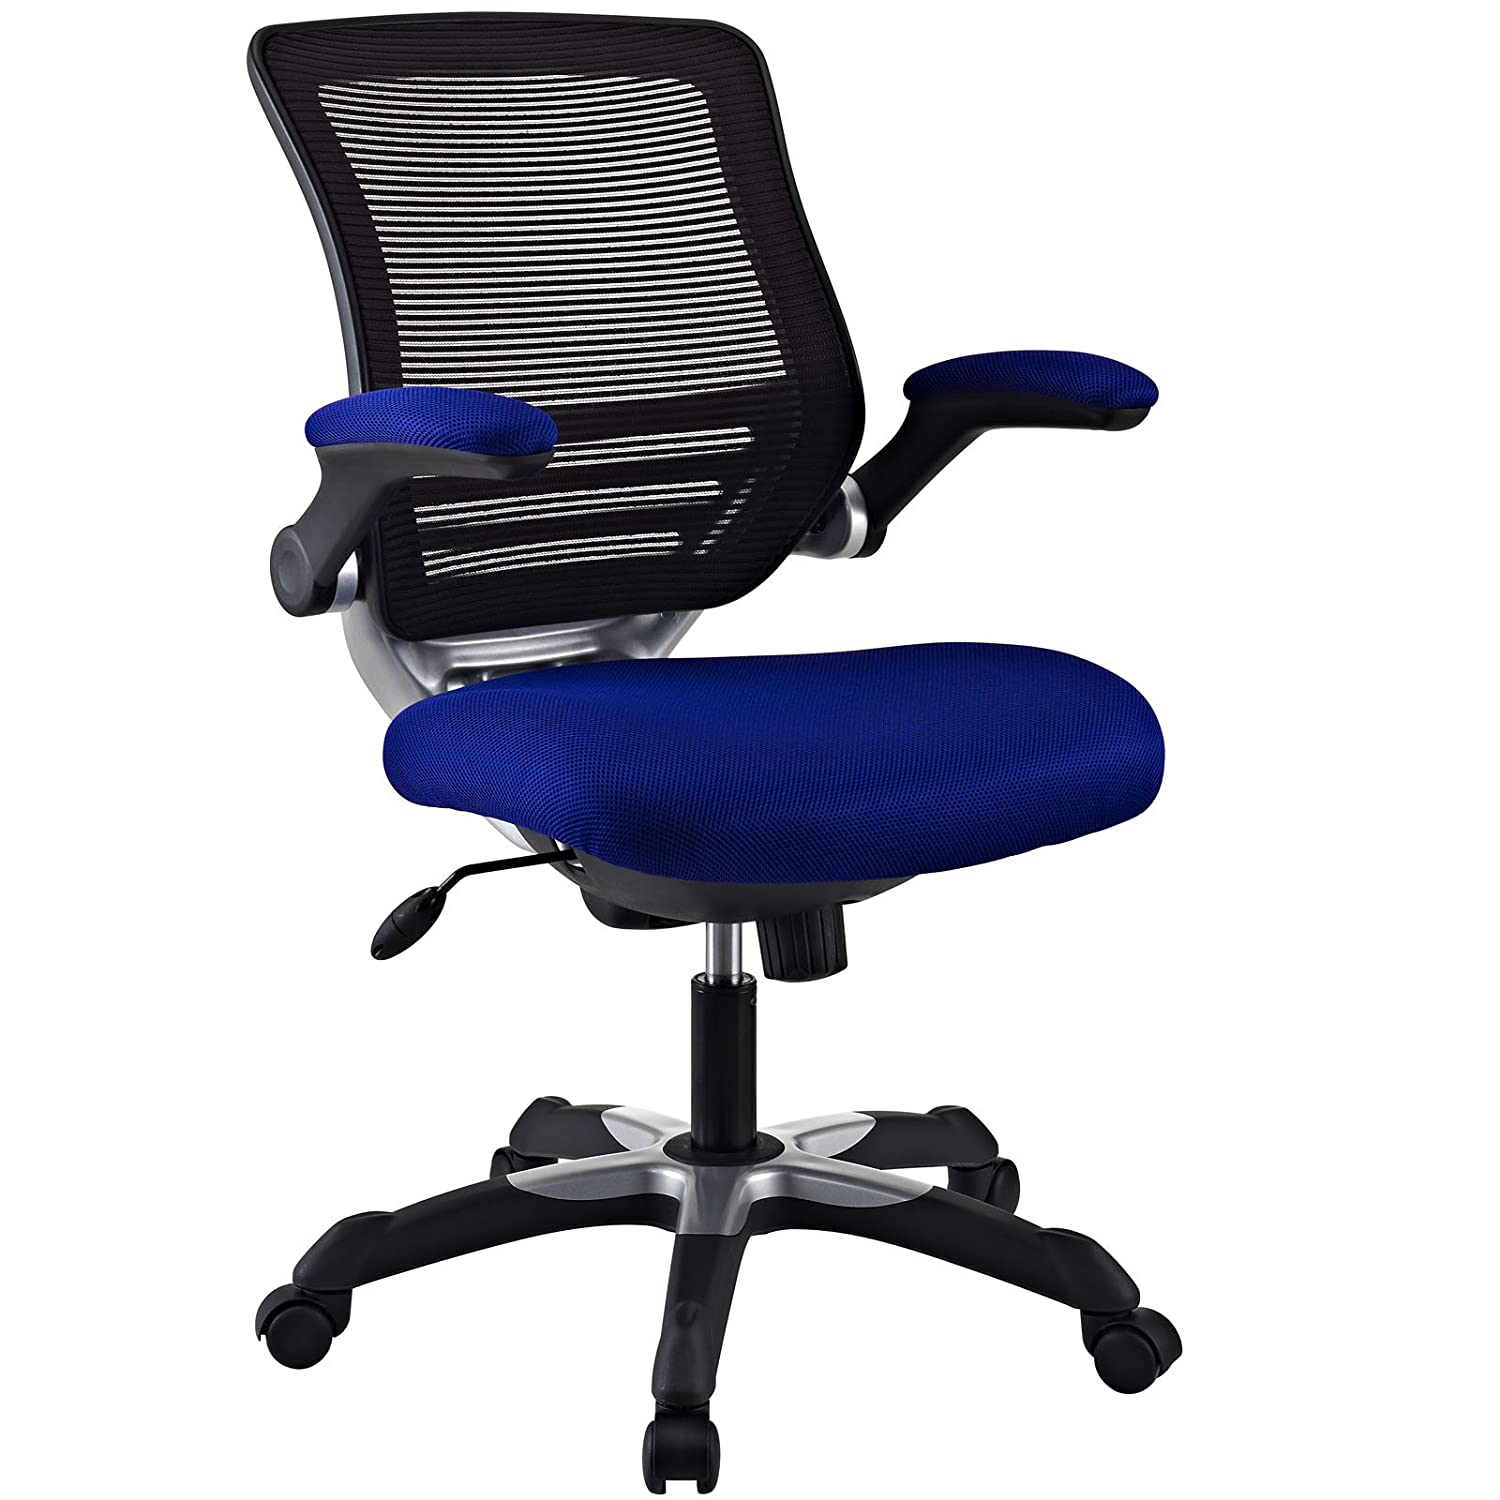 Amazon Modway Edge Mesh Back and Blue Mesh Seat fice Chair